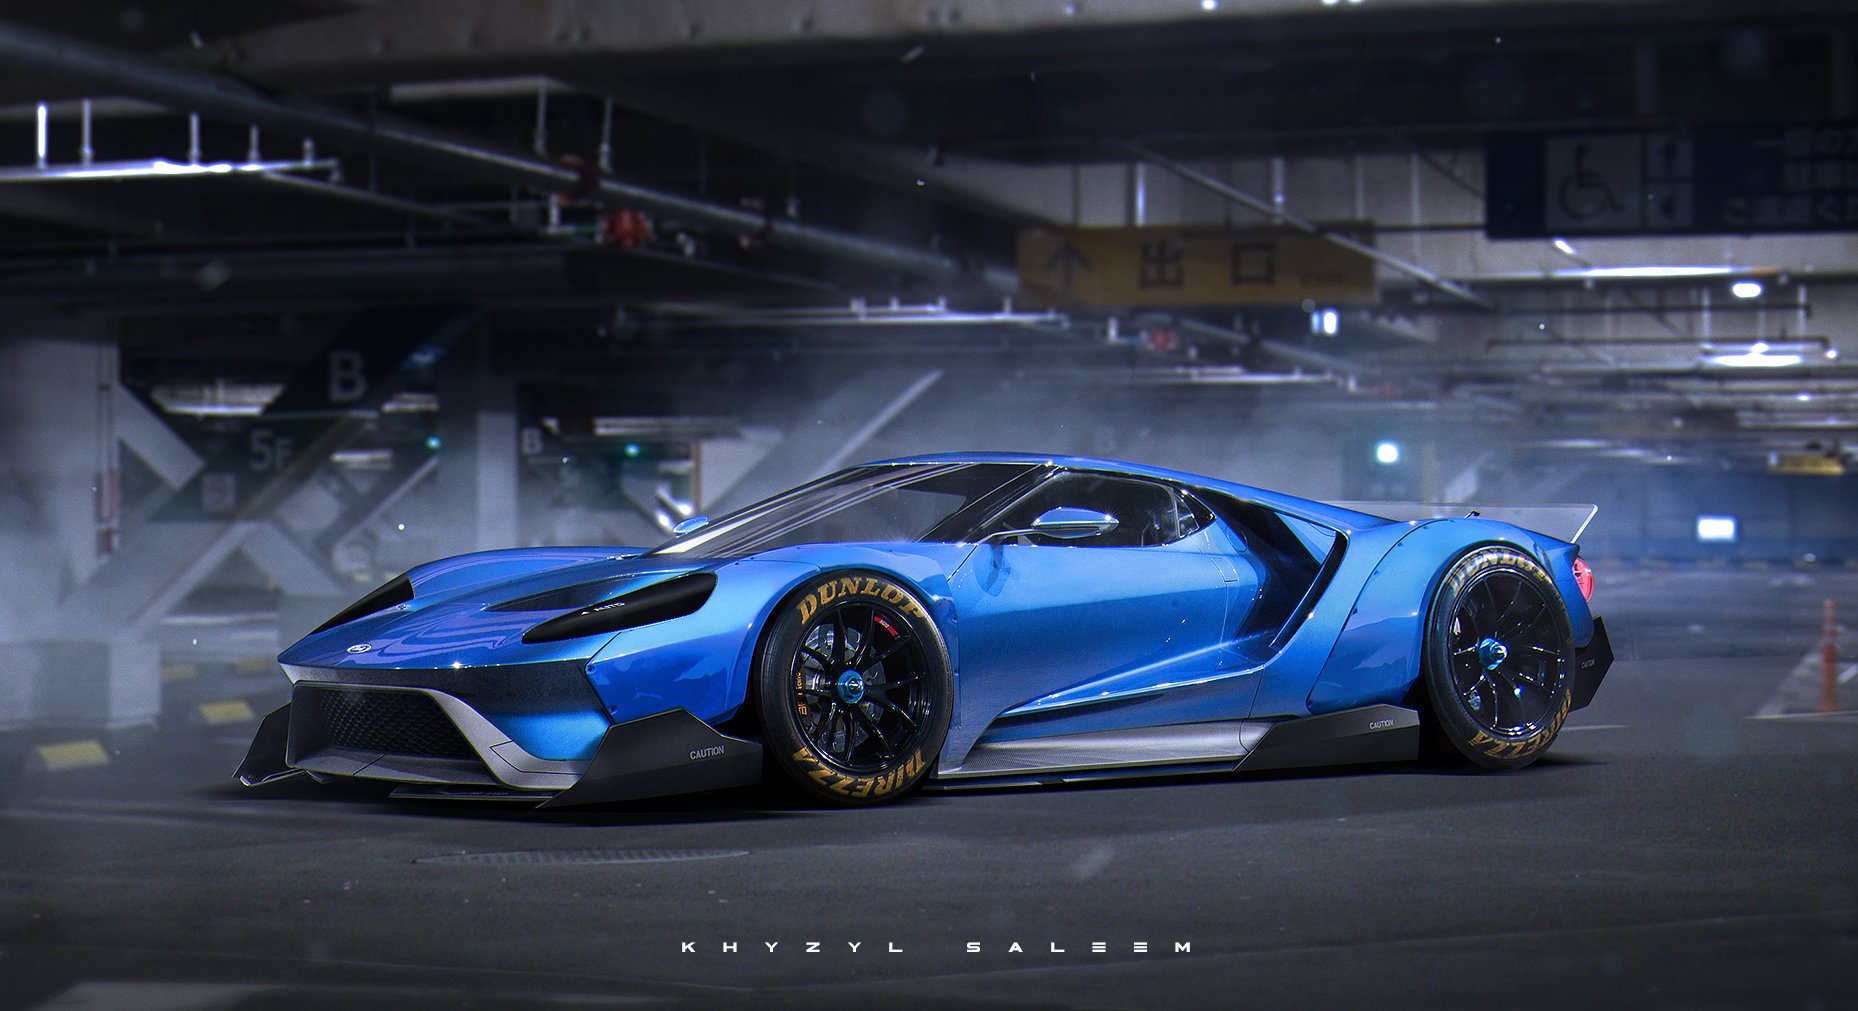 2017 Ford Gt Egoista Rendering Has Liberty Walk Widebody Kit 97705 on e30 diffuser